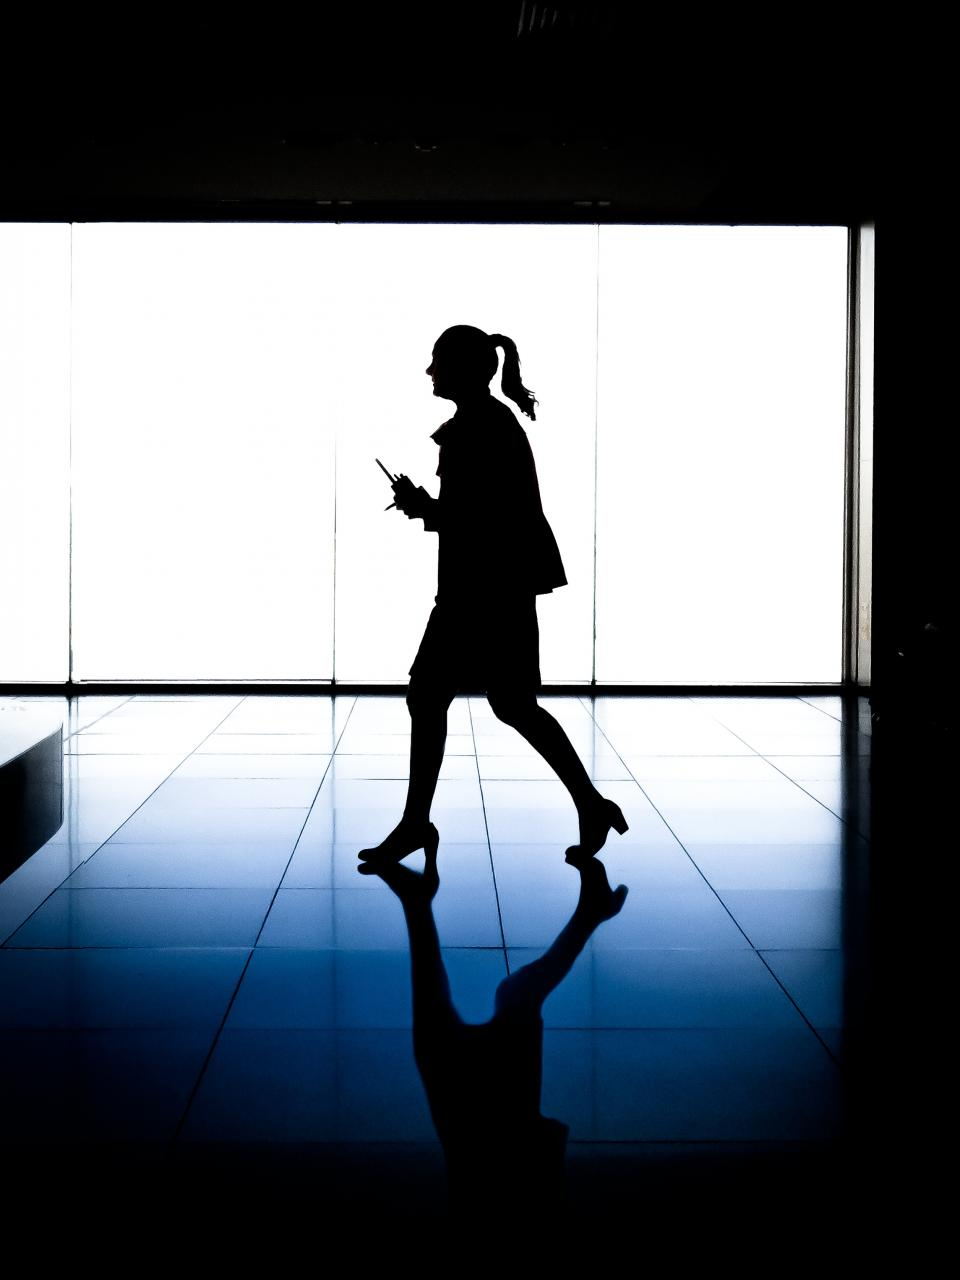 dark, silhouette, lights, floor, reflection, people, woman, girl, female, business, office